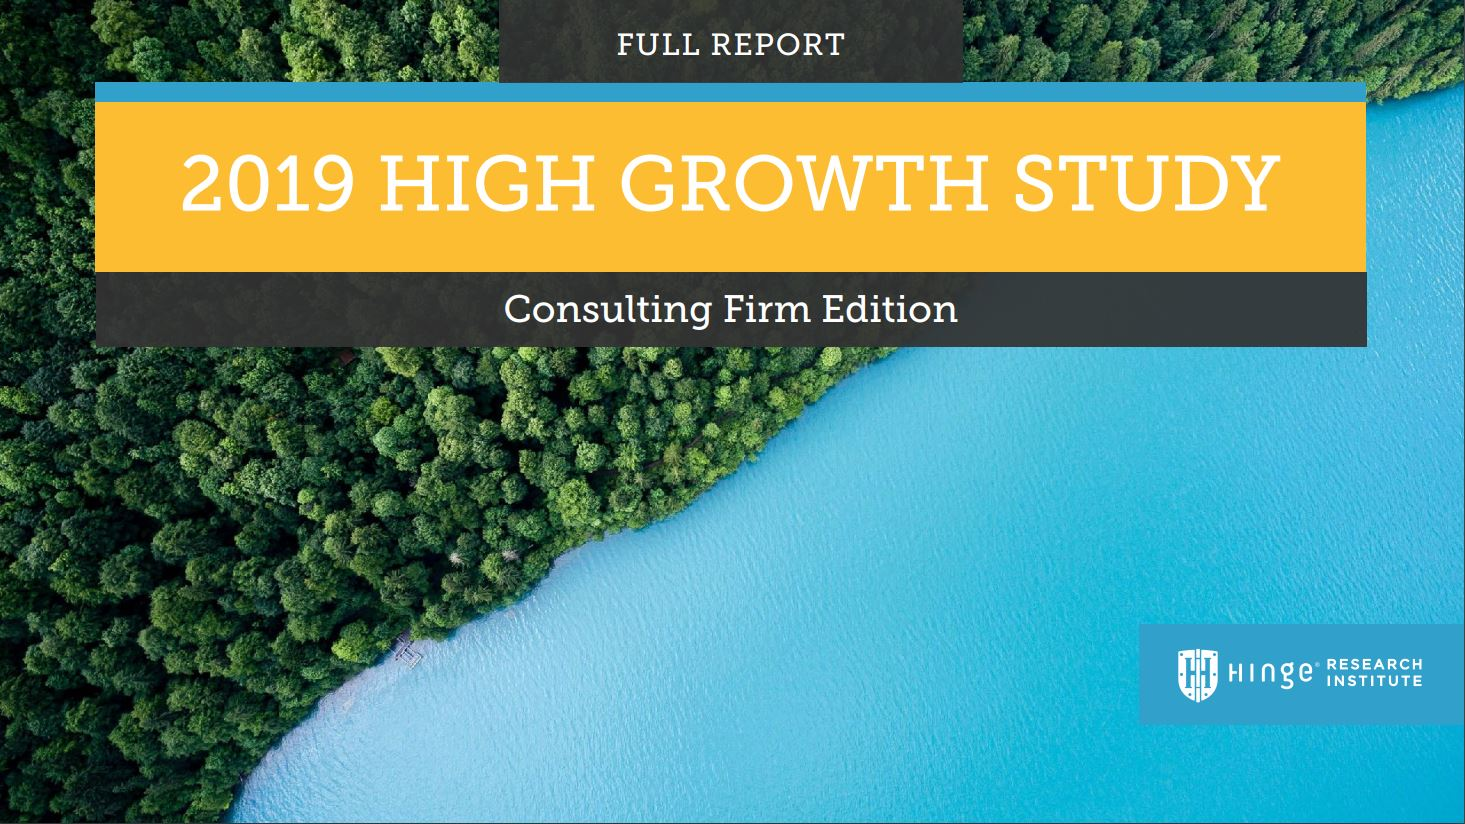 Hinge Research Institute High Growth Study - Consulting Firm Edition